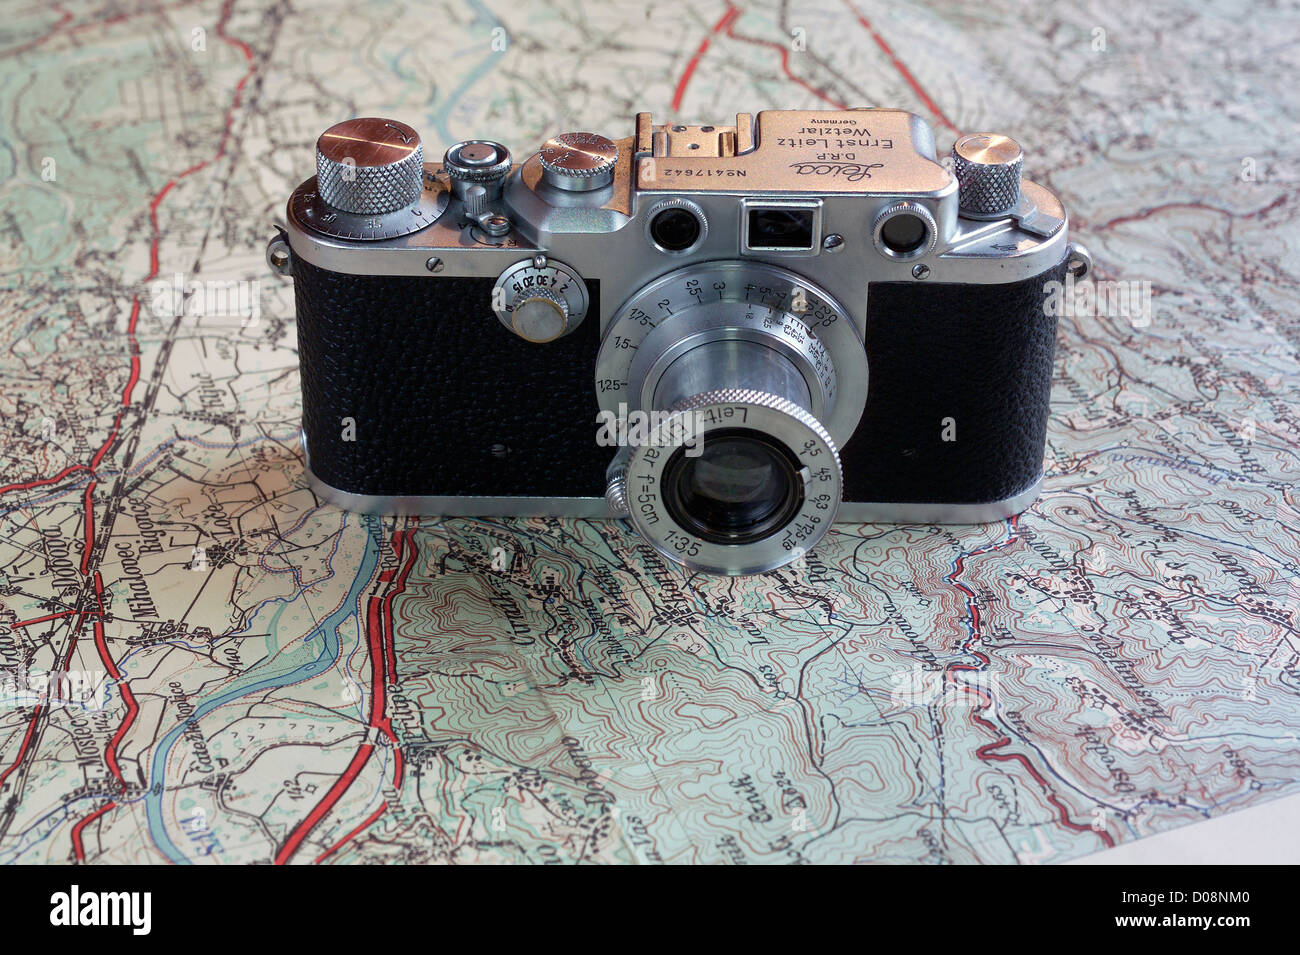 Leica IIIc rangefinder camera from 1930s on travel map - Stock Image